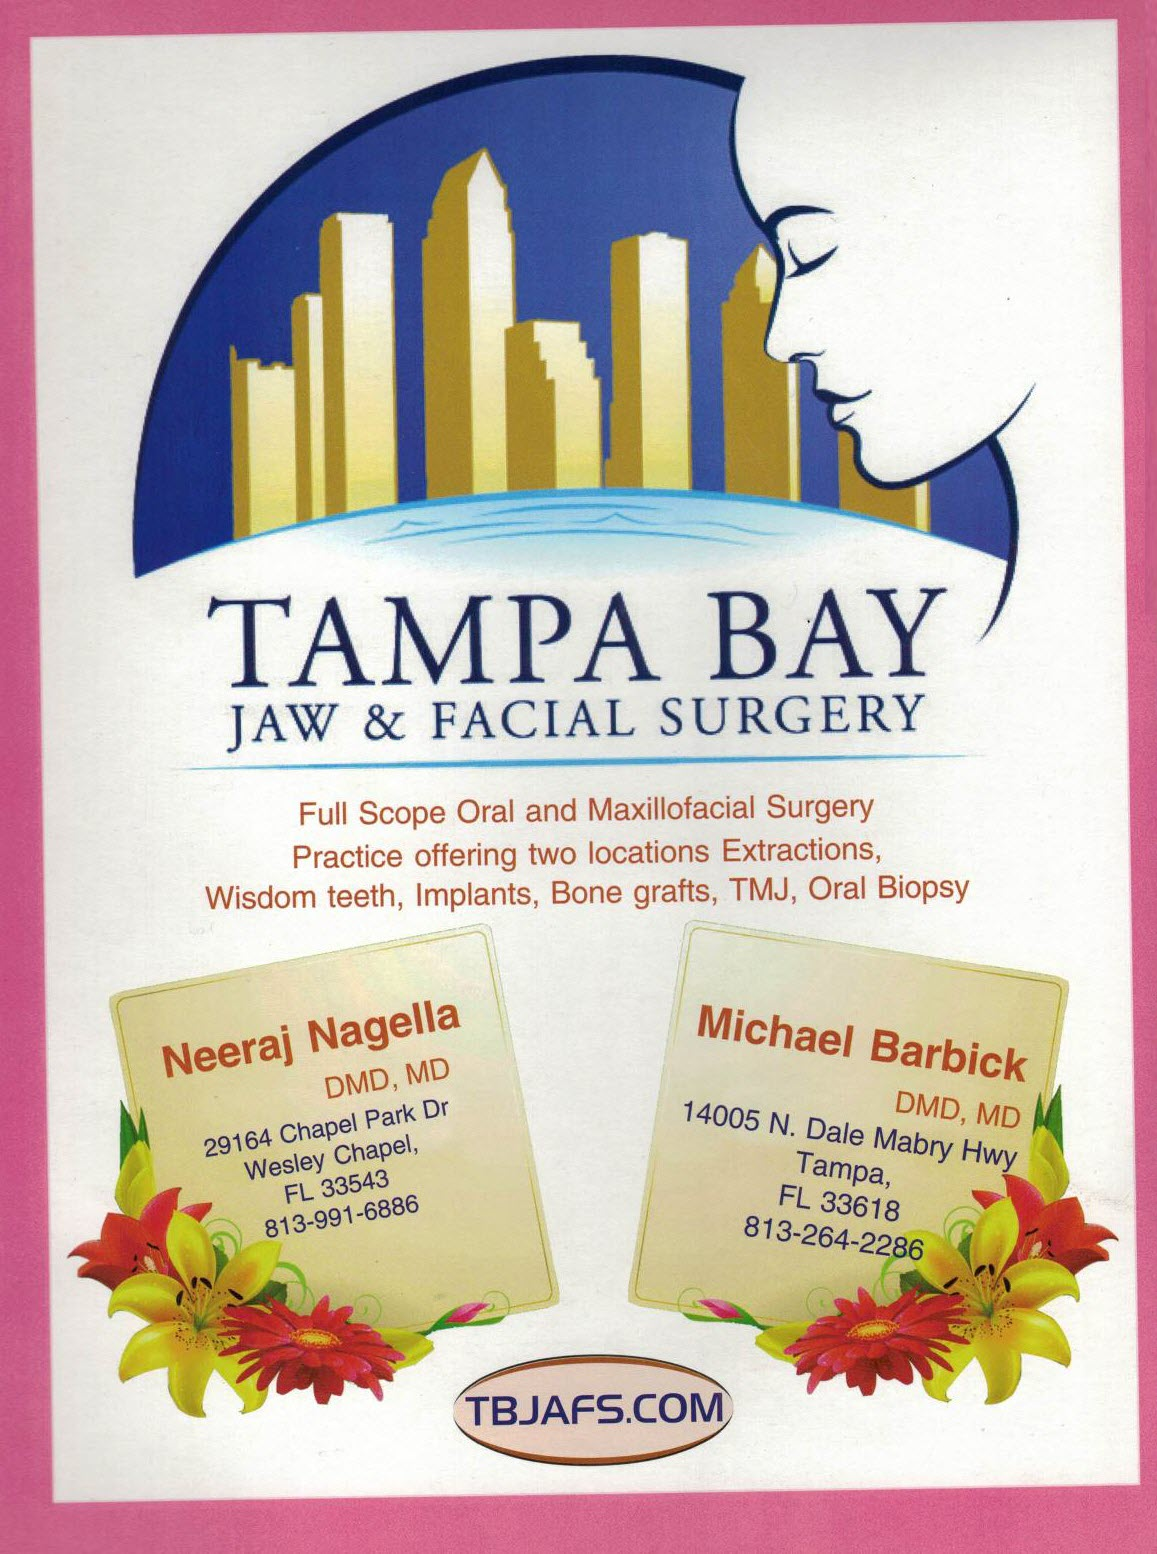 Tampa bay indian community tampa bay desi community all staff are informed administrative personnel well versed in health and insurance policies and are cpr certified 1betcityfo Choice Image